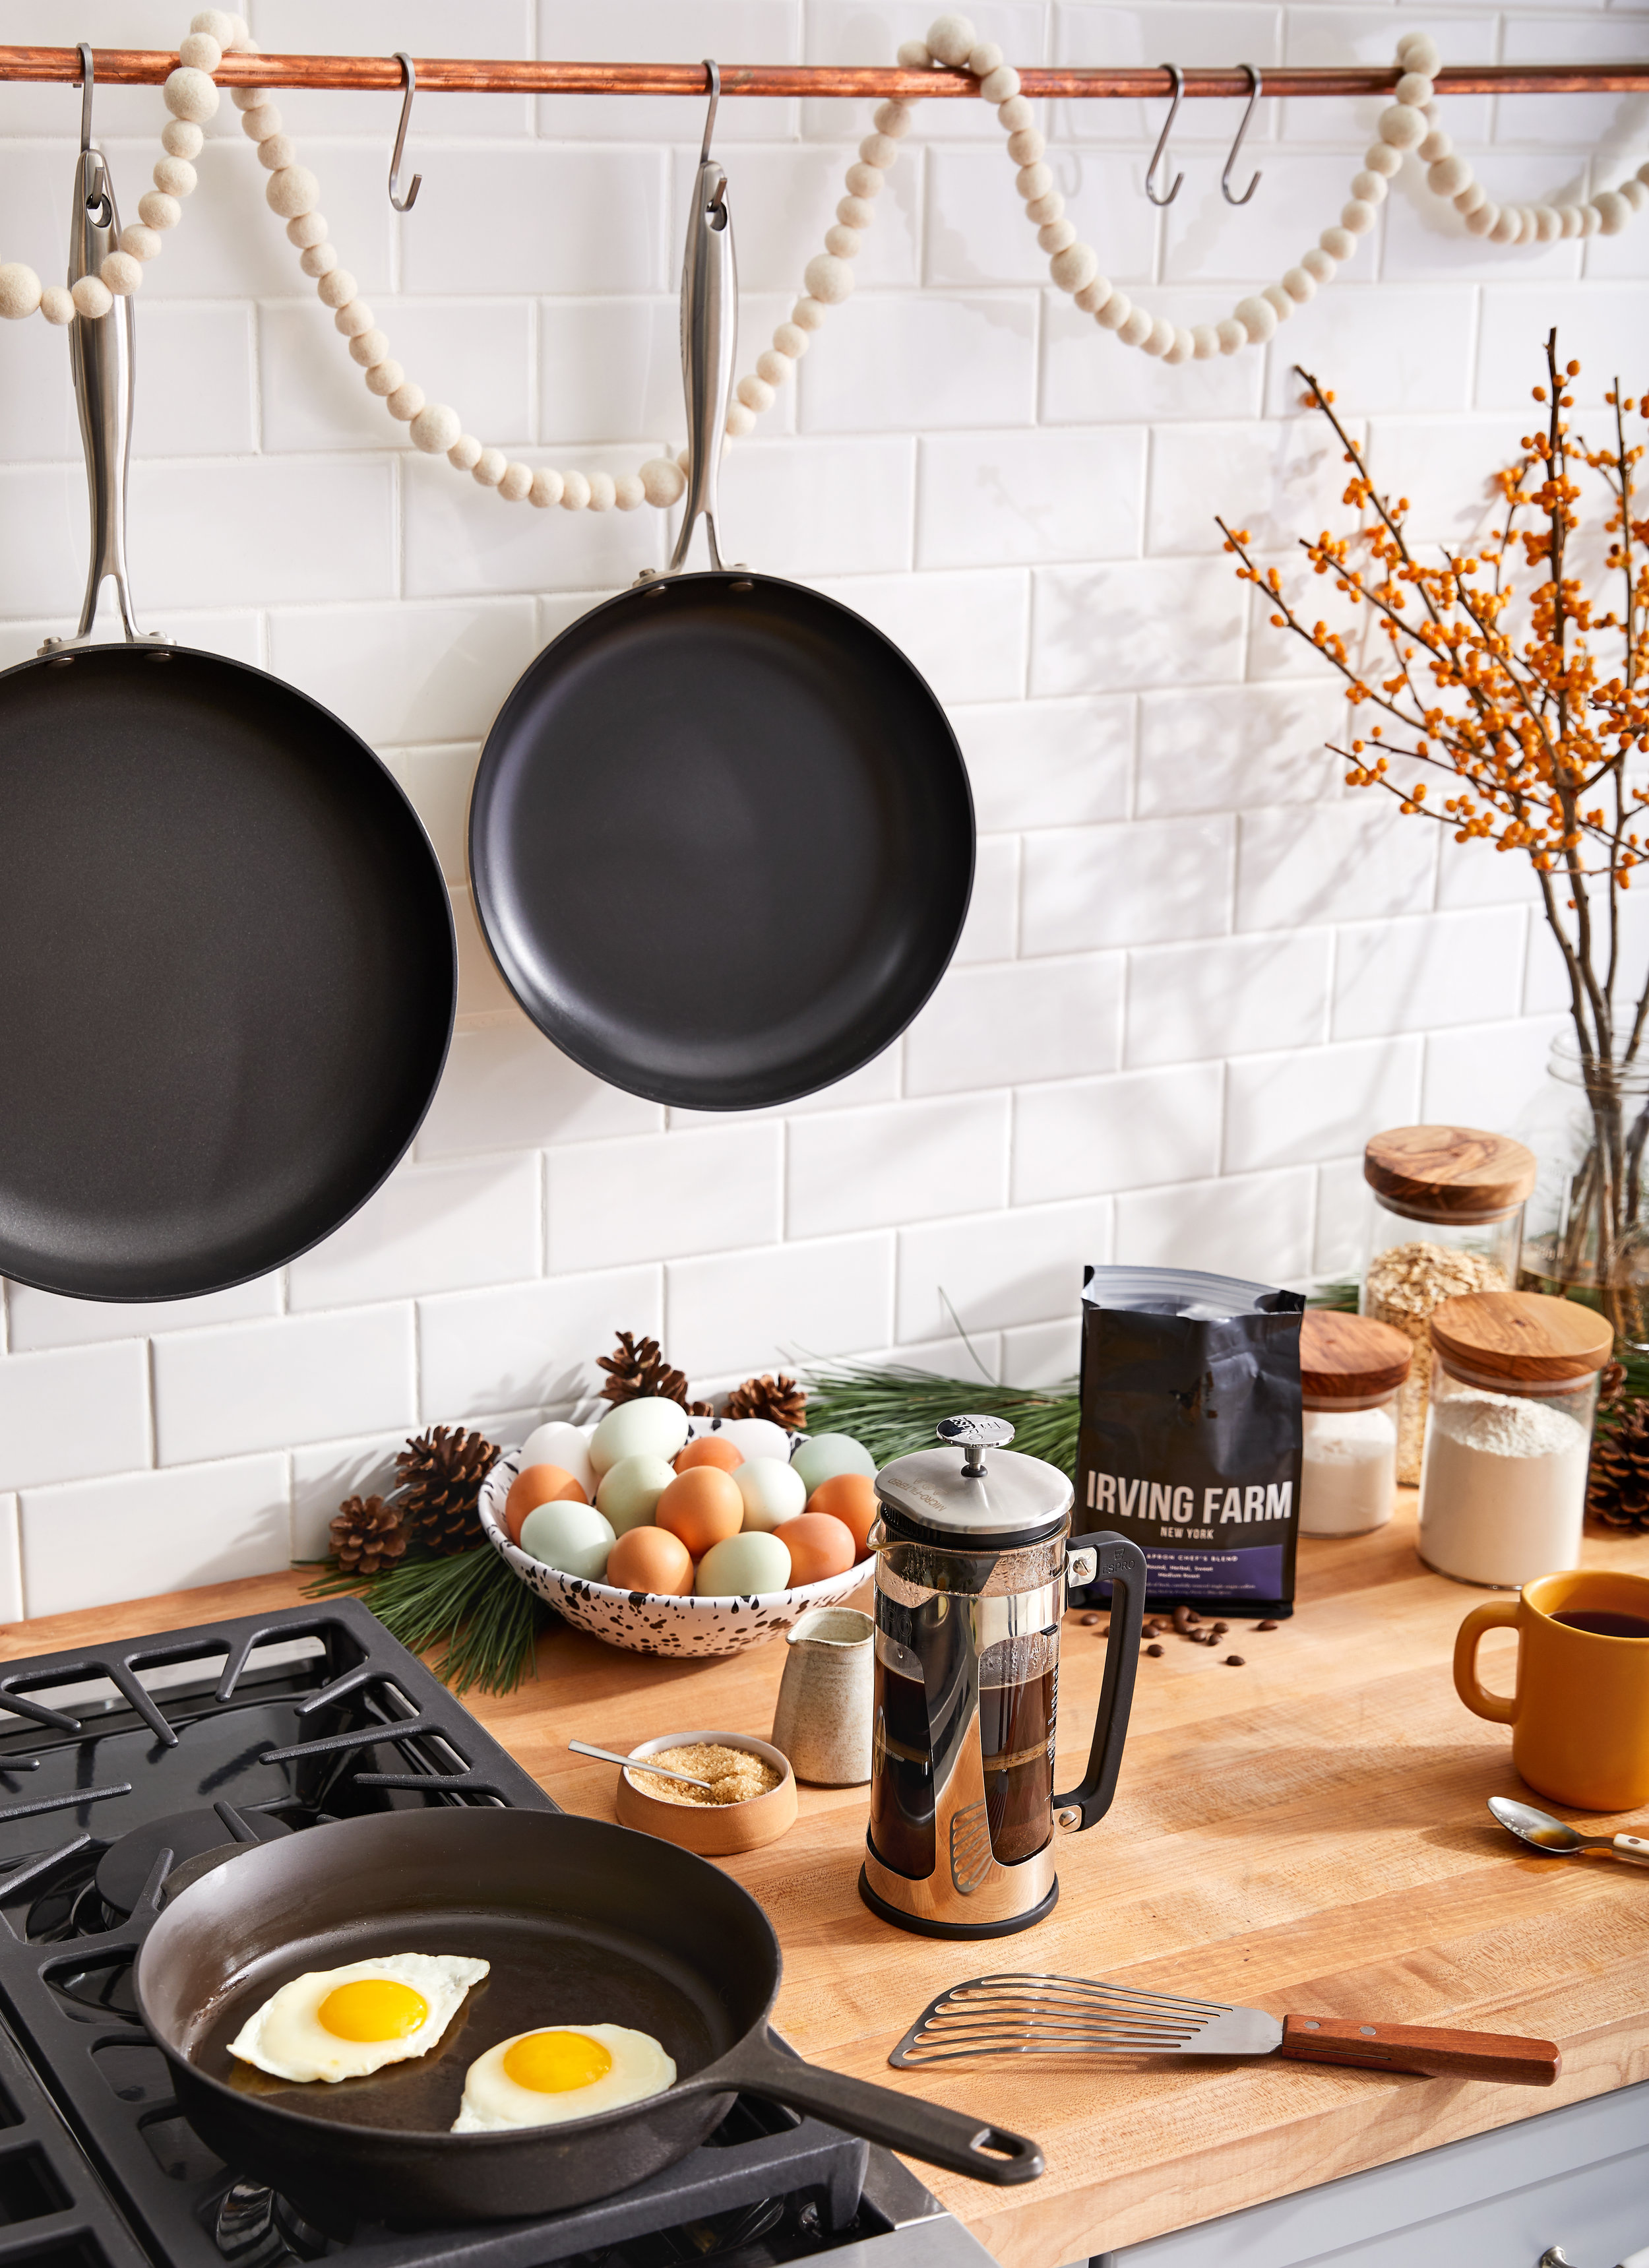 Breakfast-Counter_Holiday-Gift-Guide_10218_1365_RGB_crop.jpg